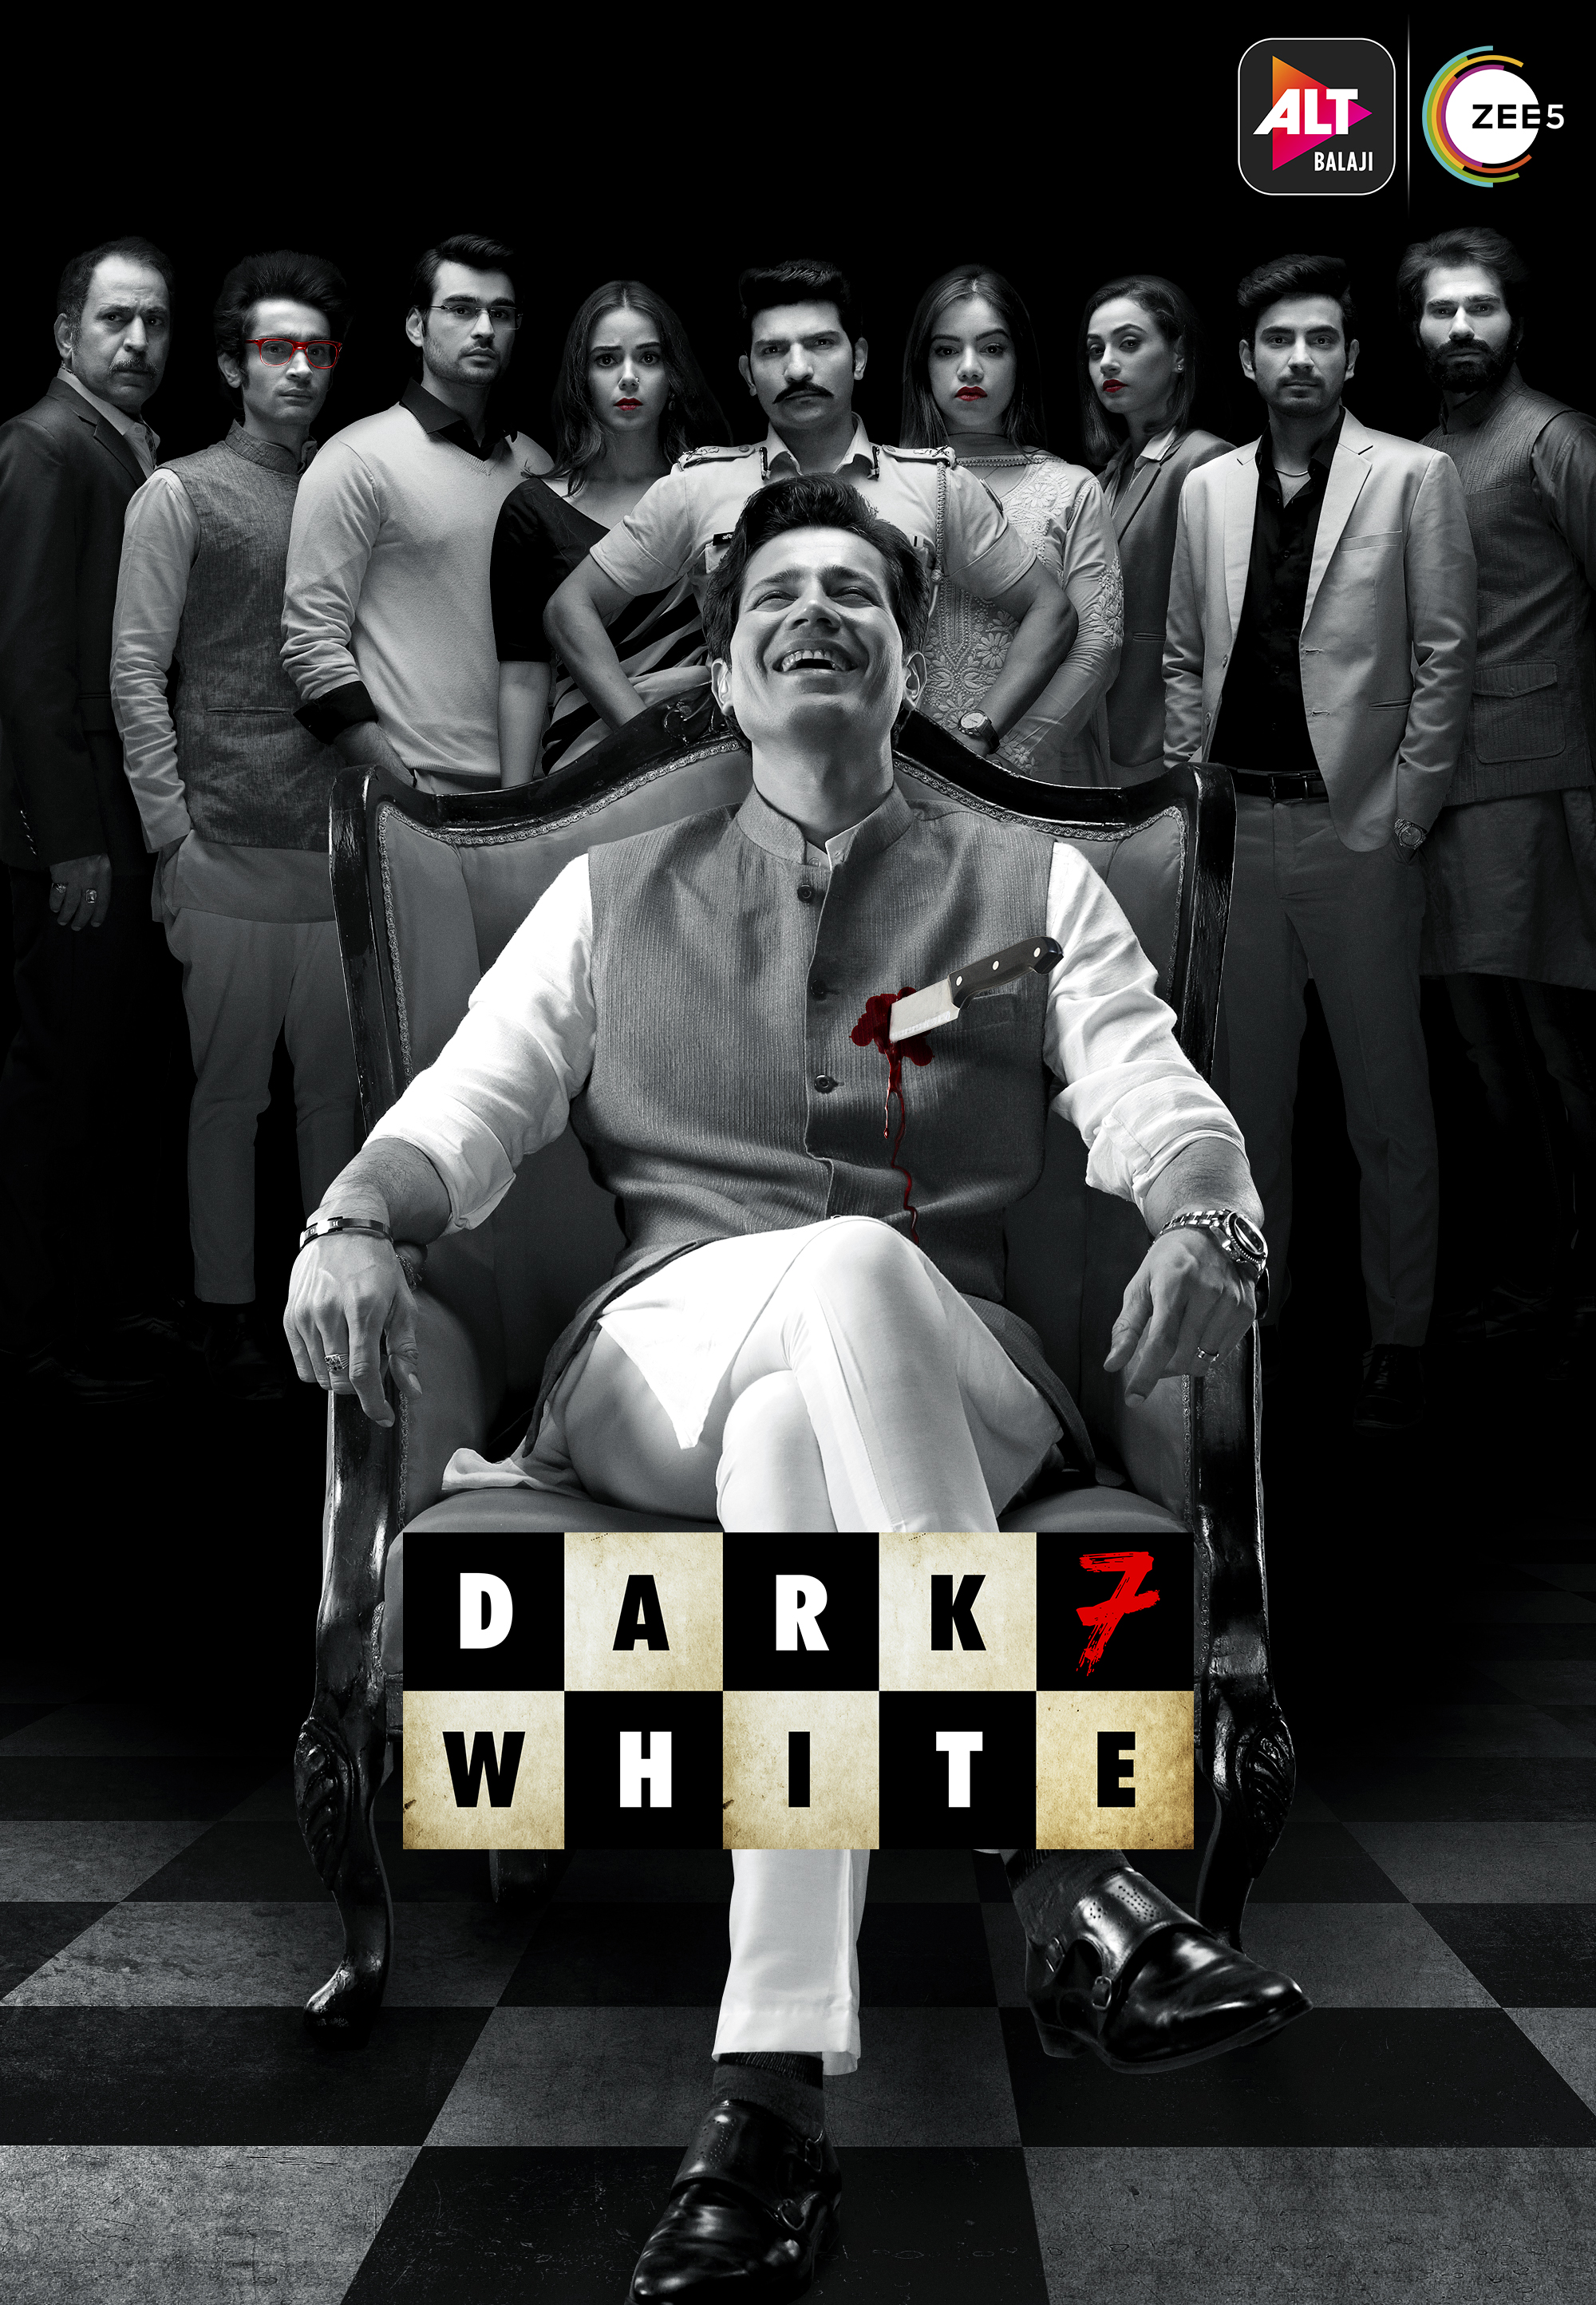 Dark 7 White 2020 S01 Hindi Complete ALTBalaji Original Web Series 1080p HDRip 2.94GB Download